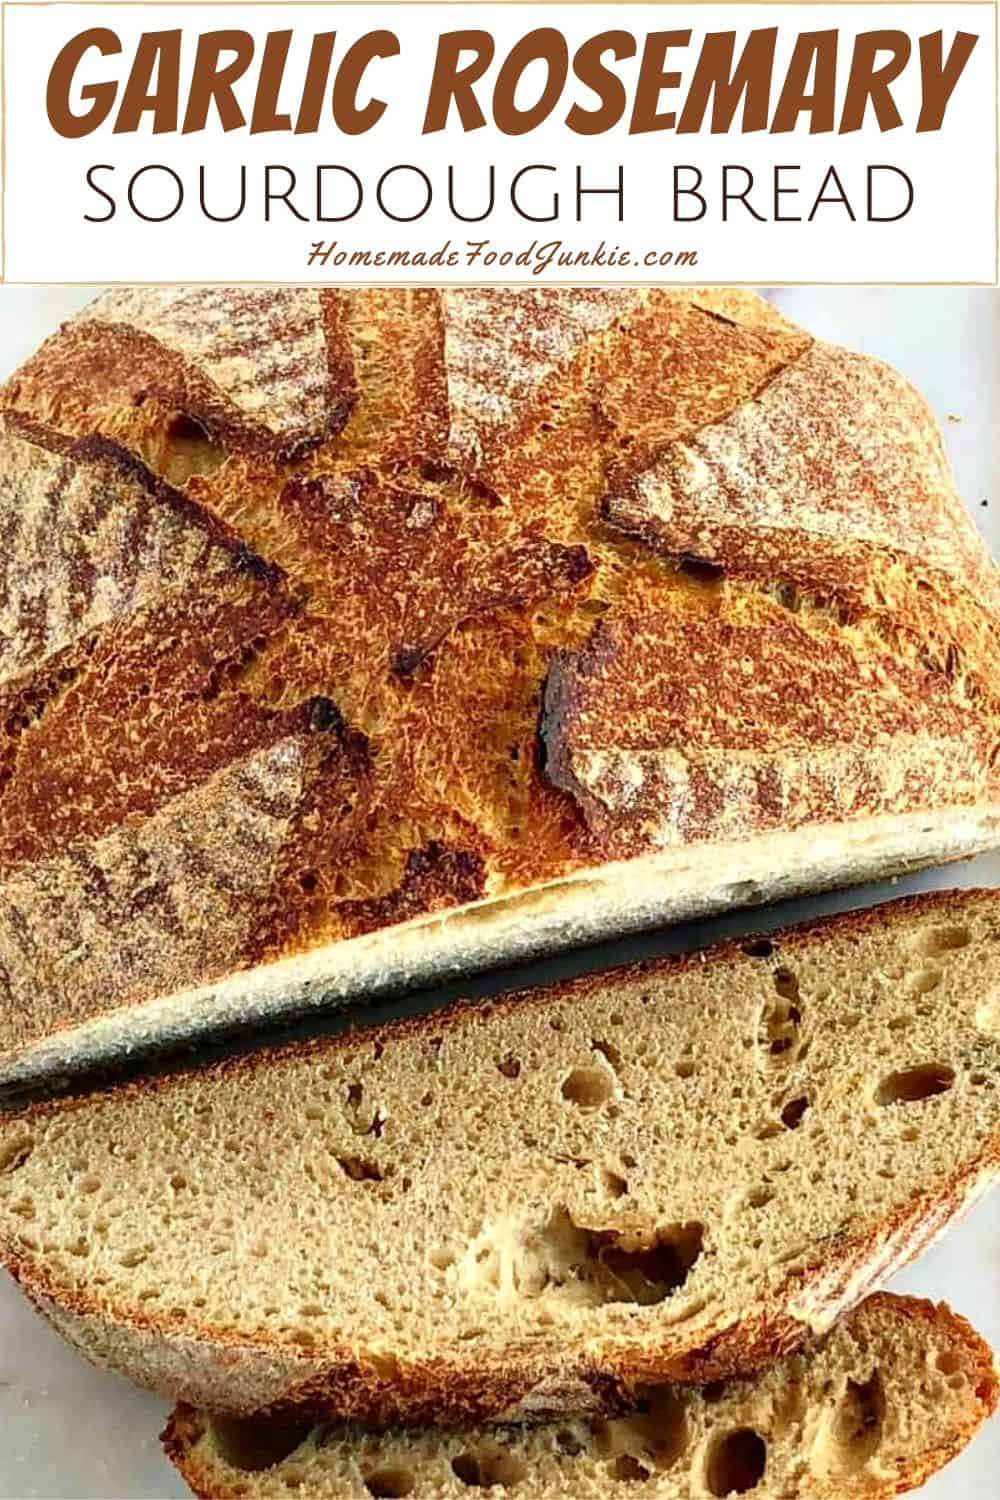 Garlic rosemary sourdough bread-pin image